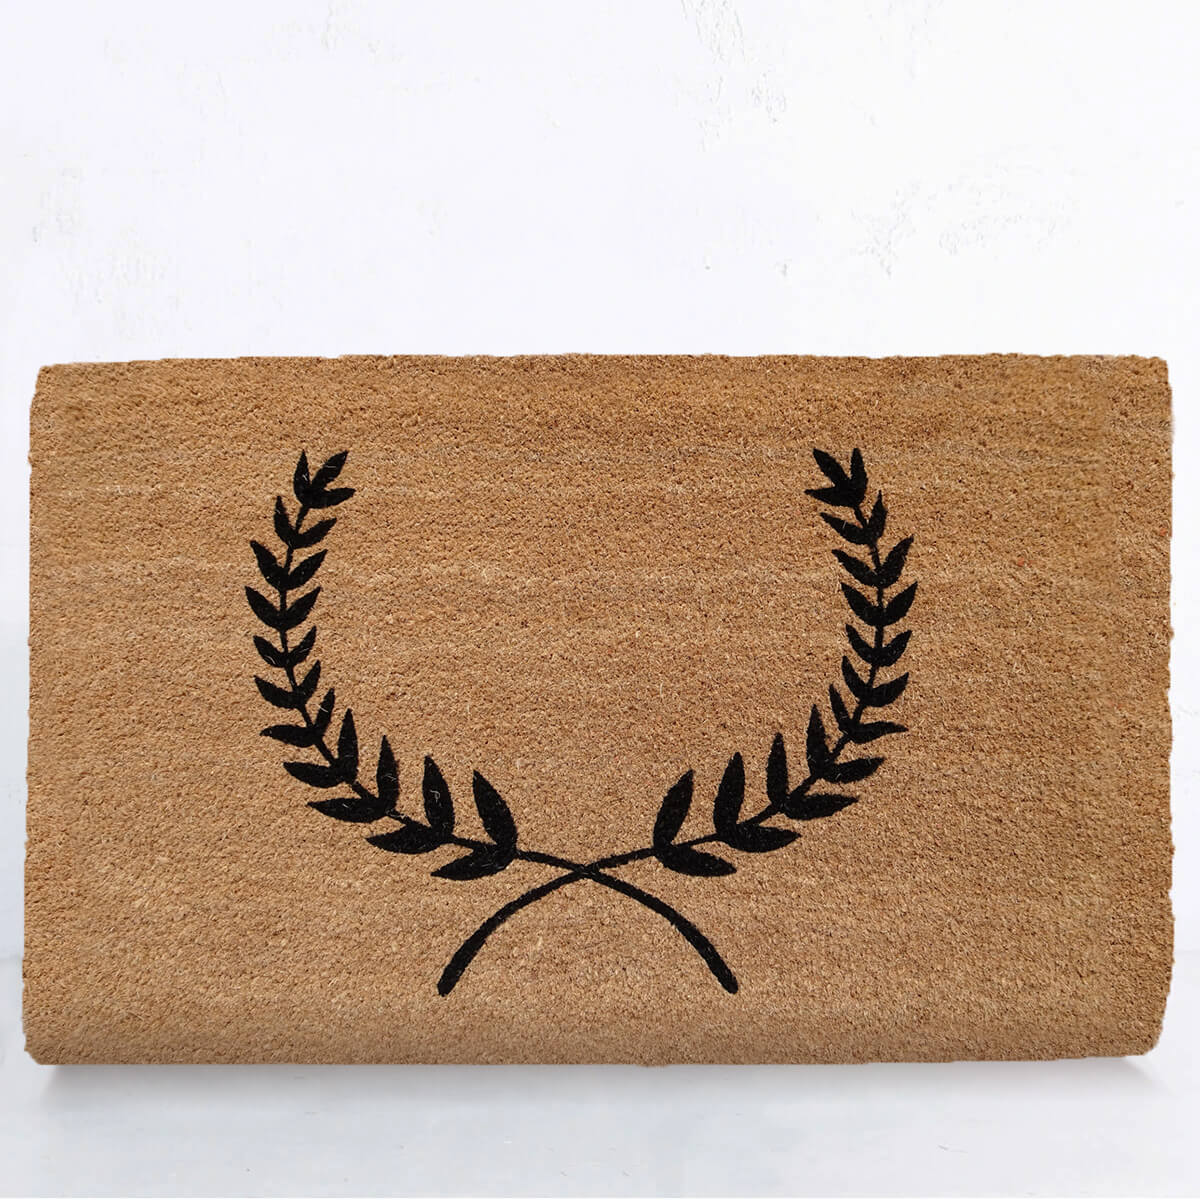 DOOR MAT | WREATH LARGE SIZE | 90CM x 60CM